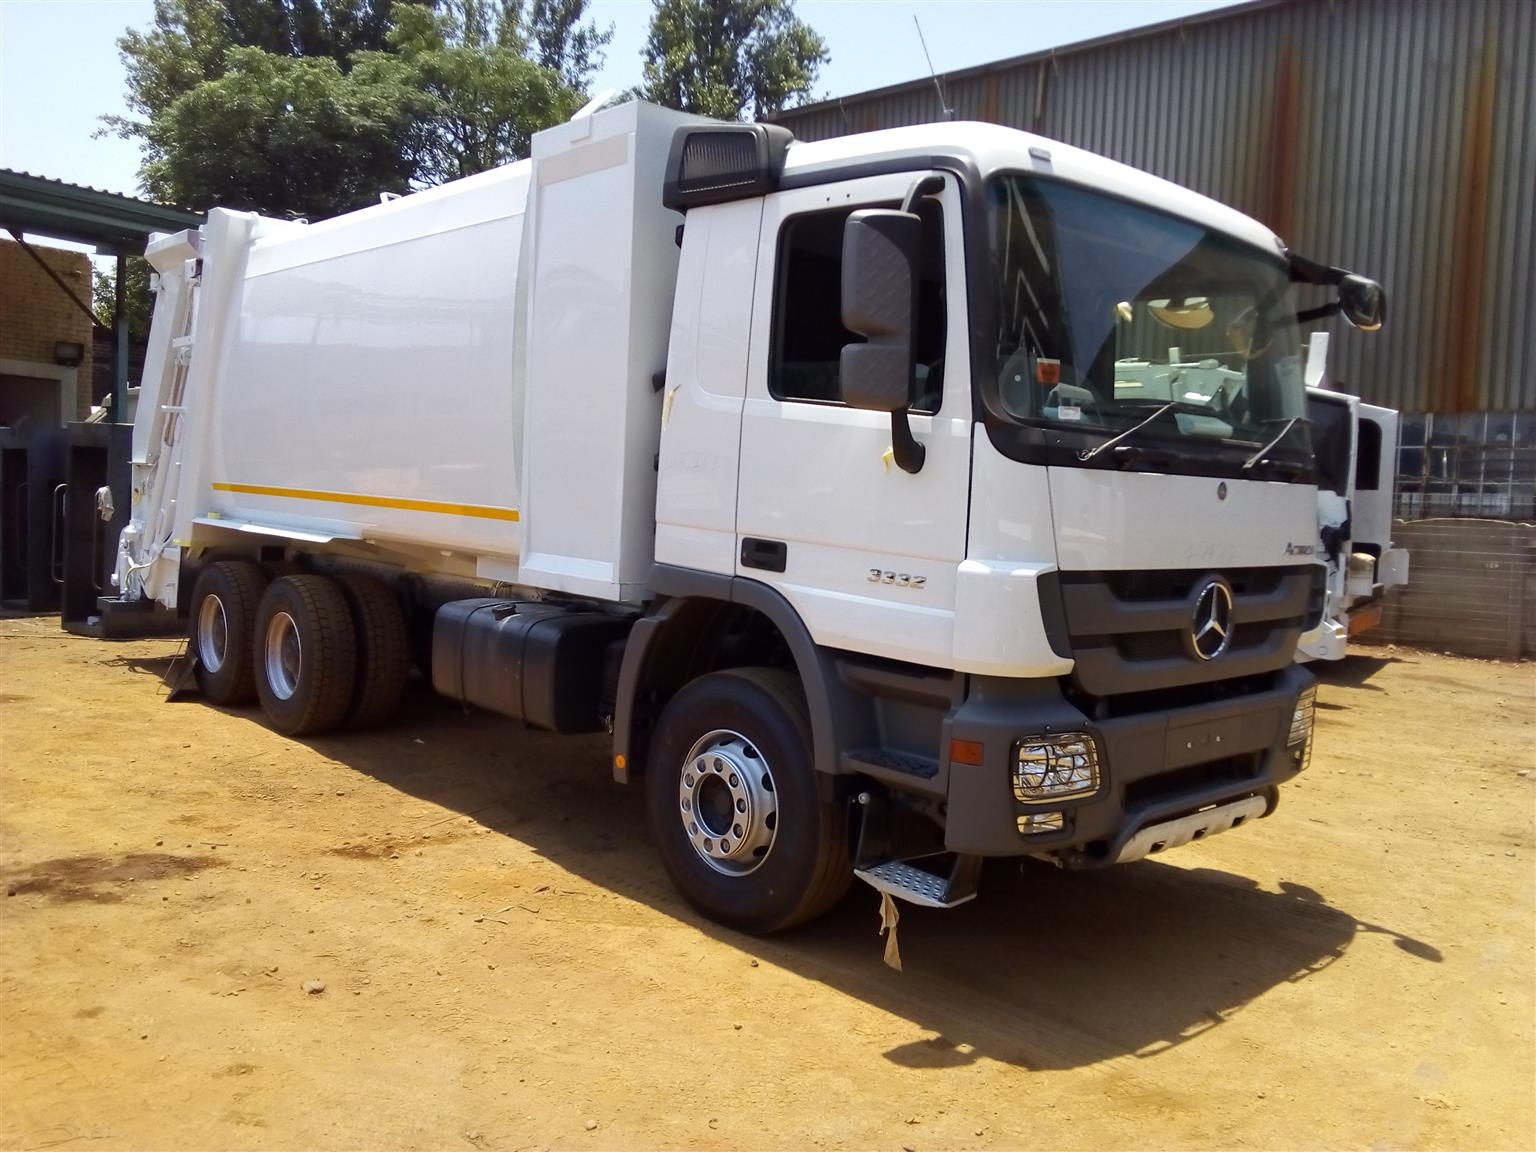 MAGNIFICENT NEAT STRONG AND RELIABLE WASTE COMPACTING LOAD